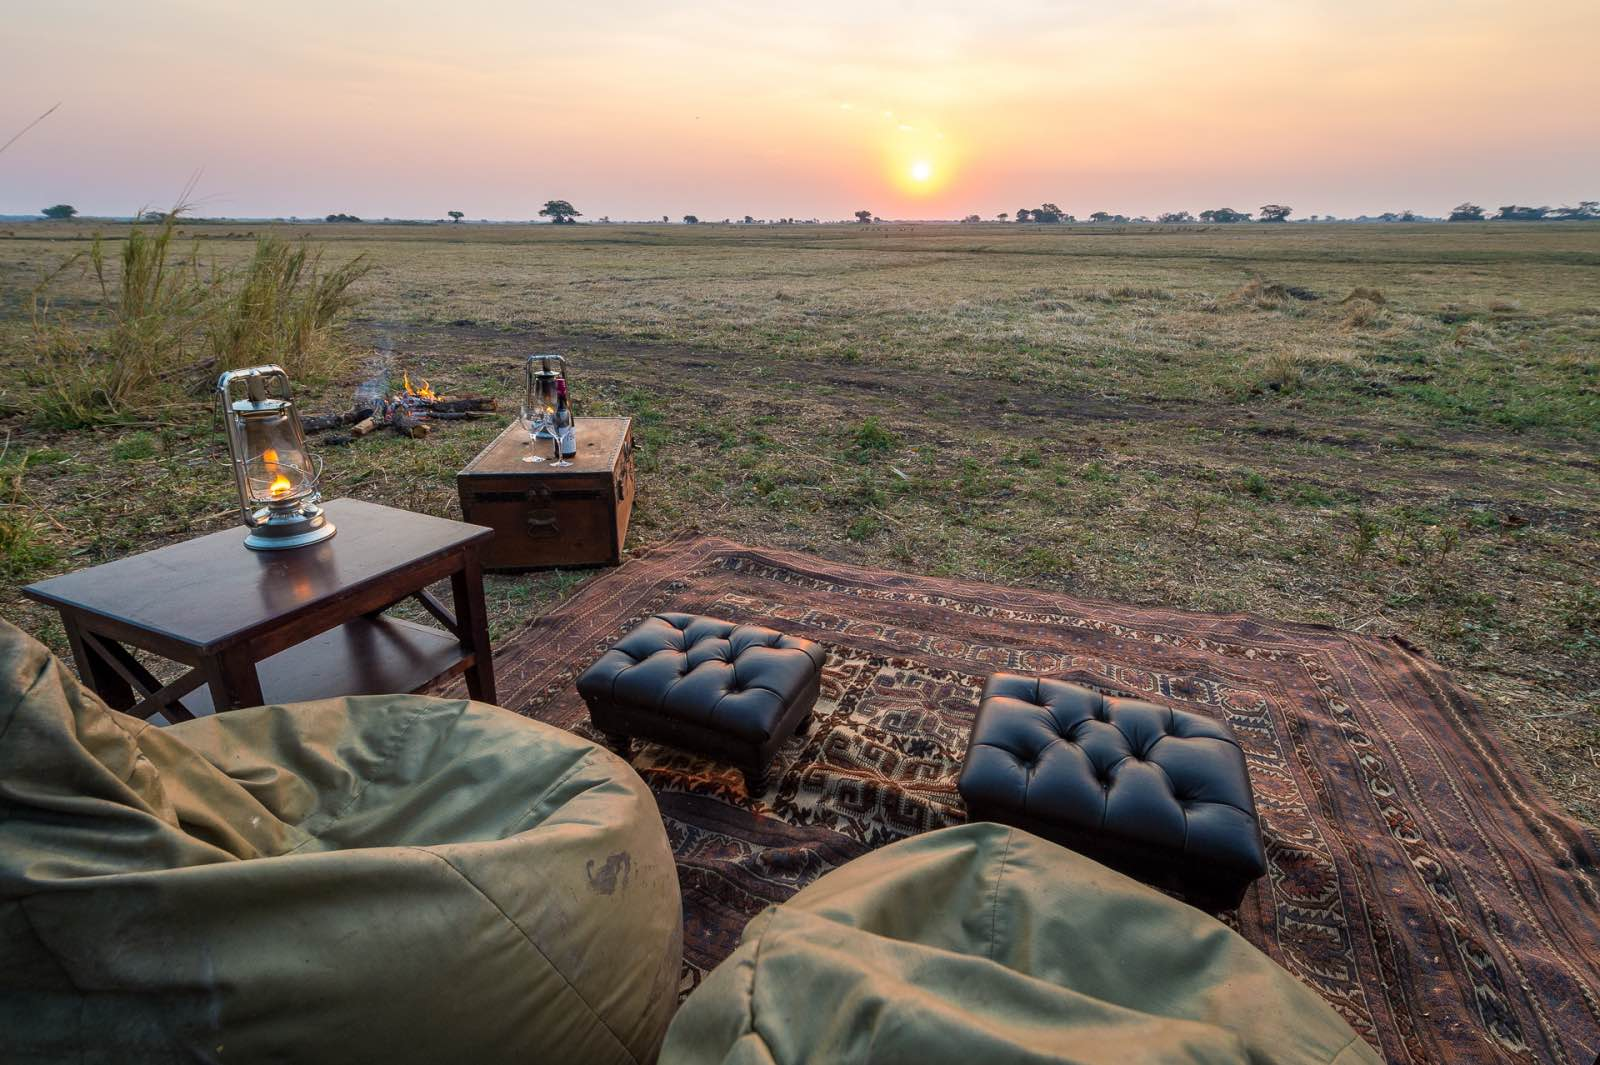 Total relaxation enjoying the sunset overlooking the floodplains at Shumba Camp